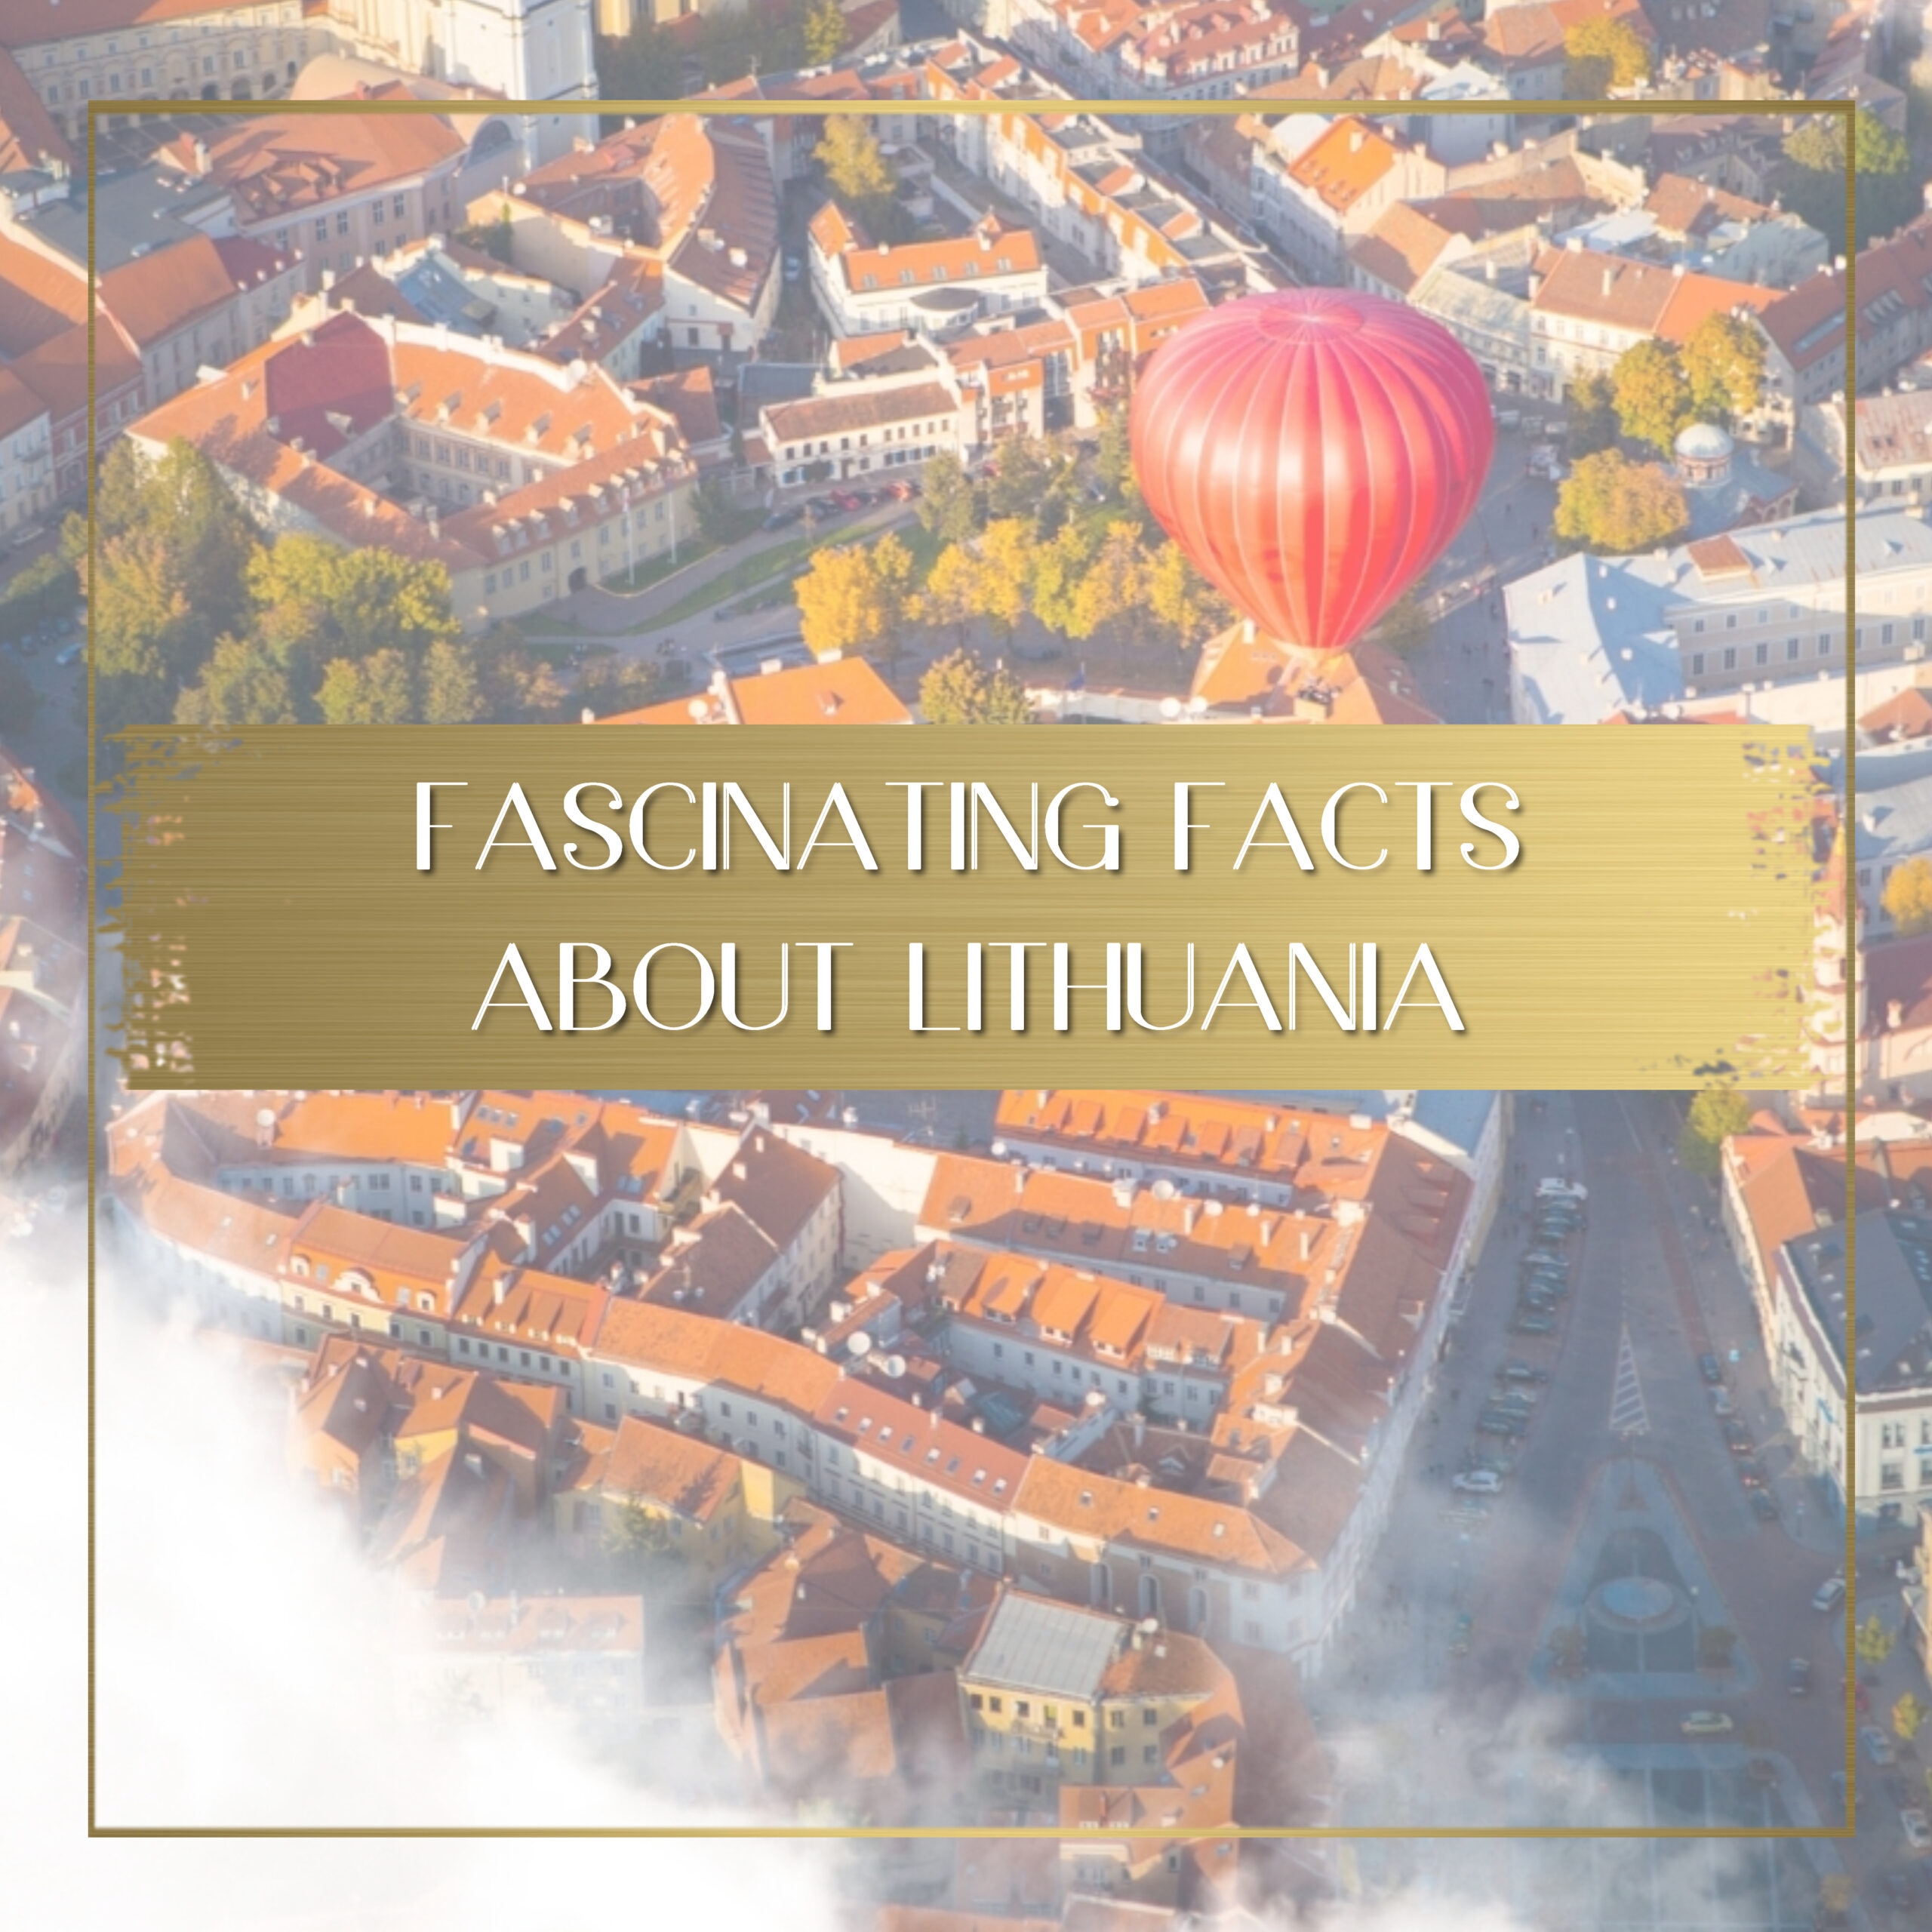 Facts about Lithuania feature